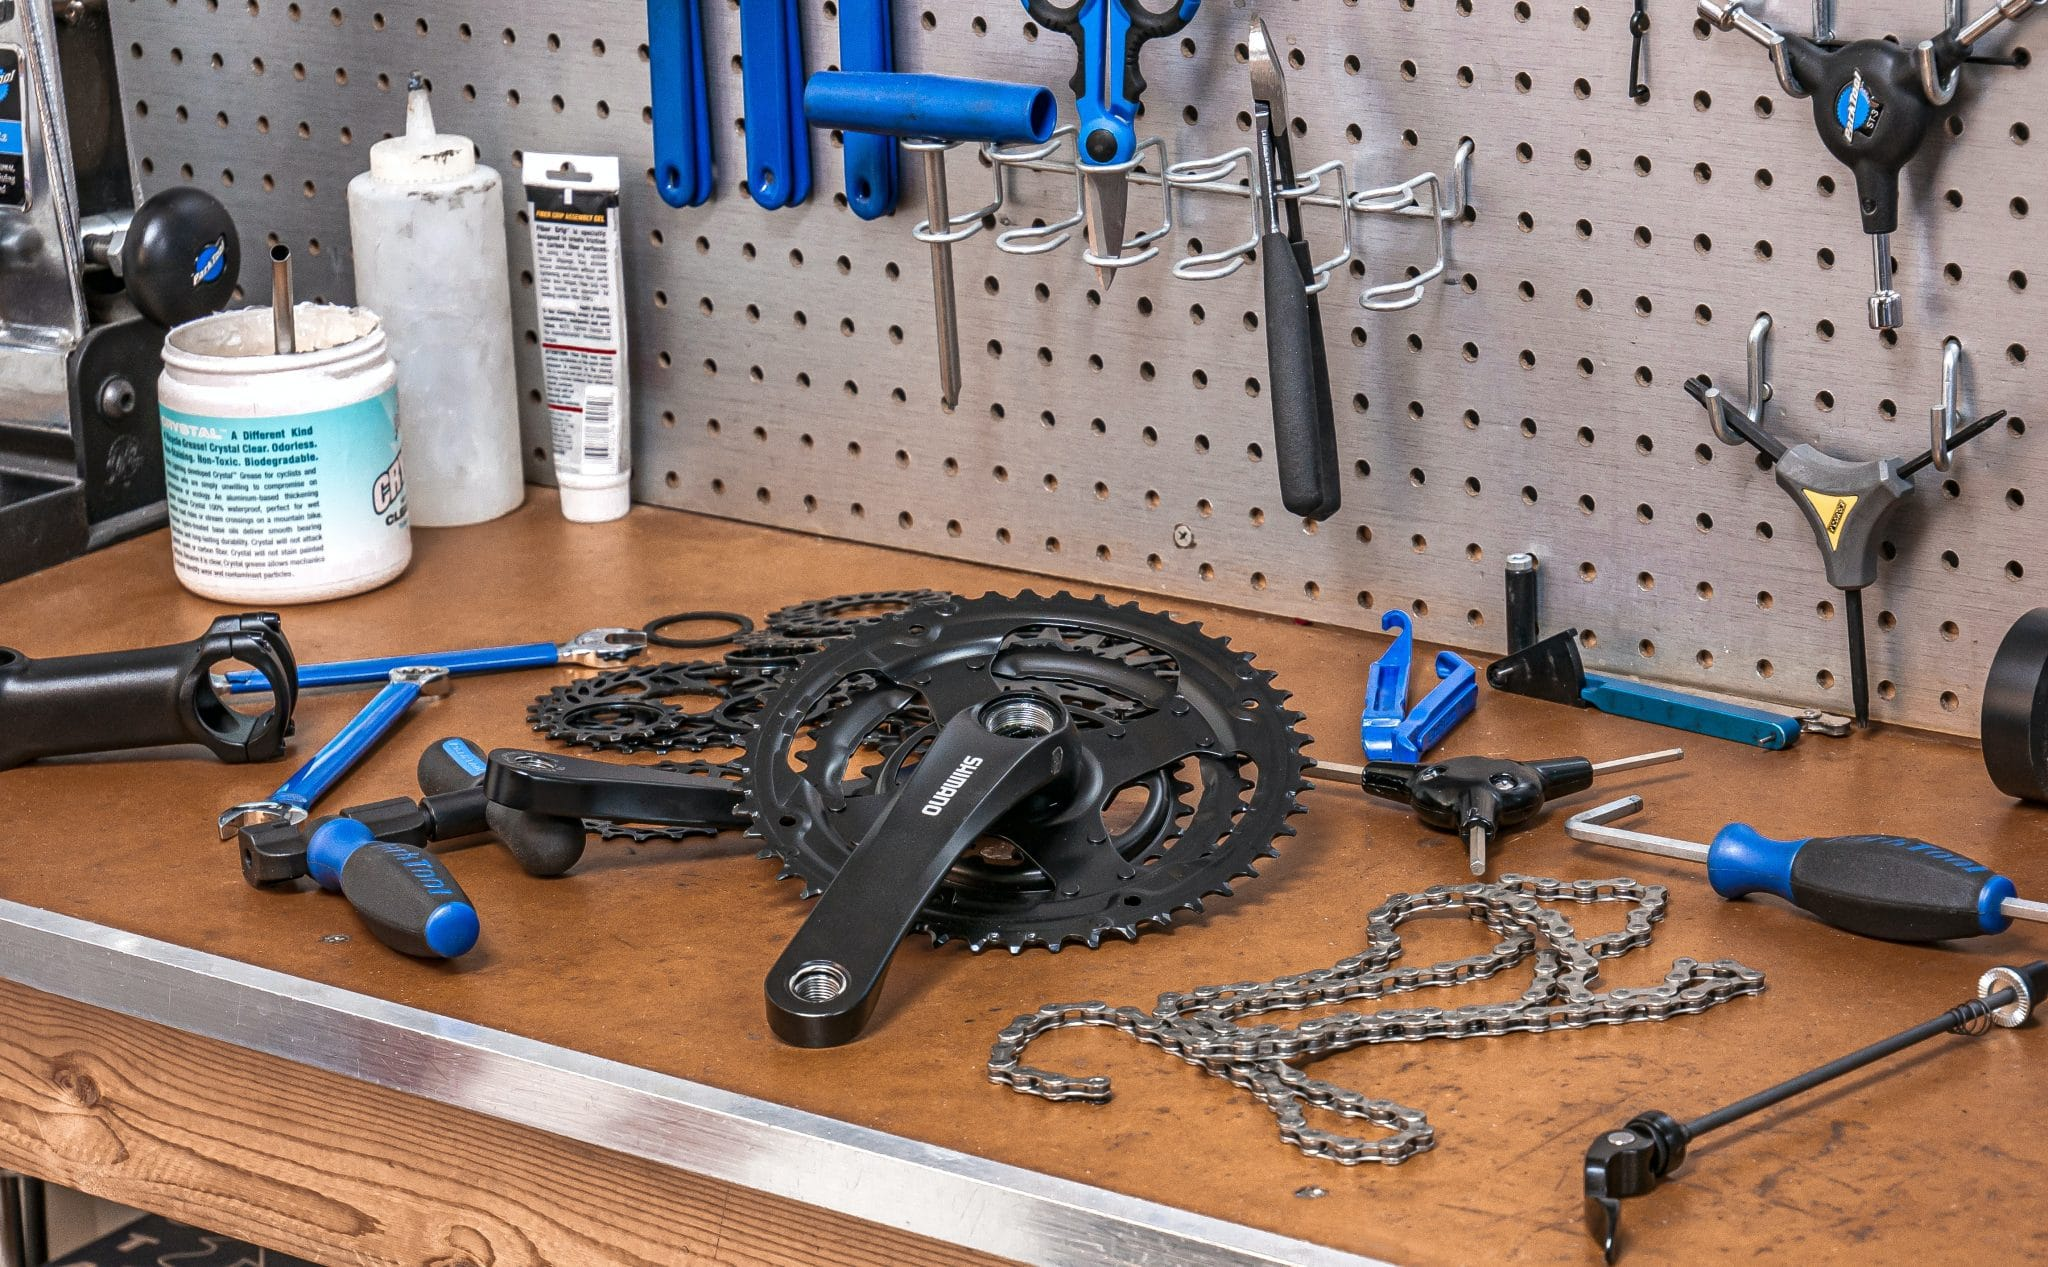 Work Bench with Bicycle Tools and Parts in Color